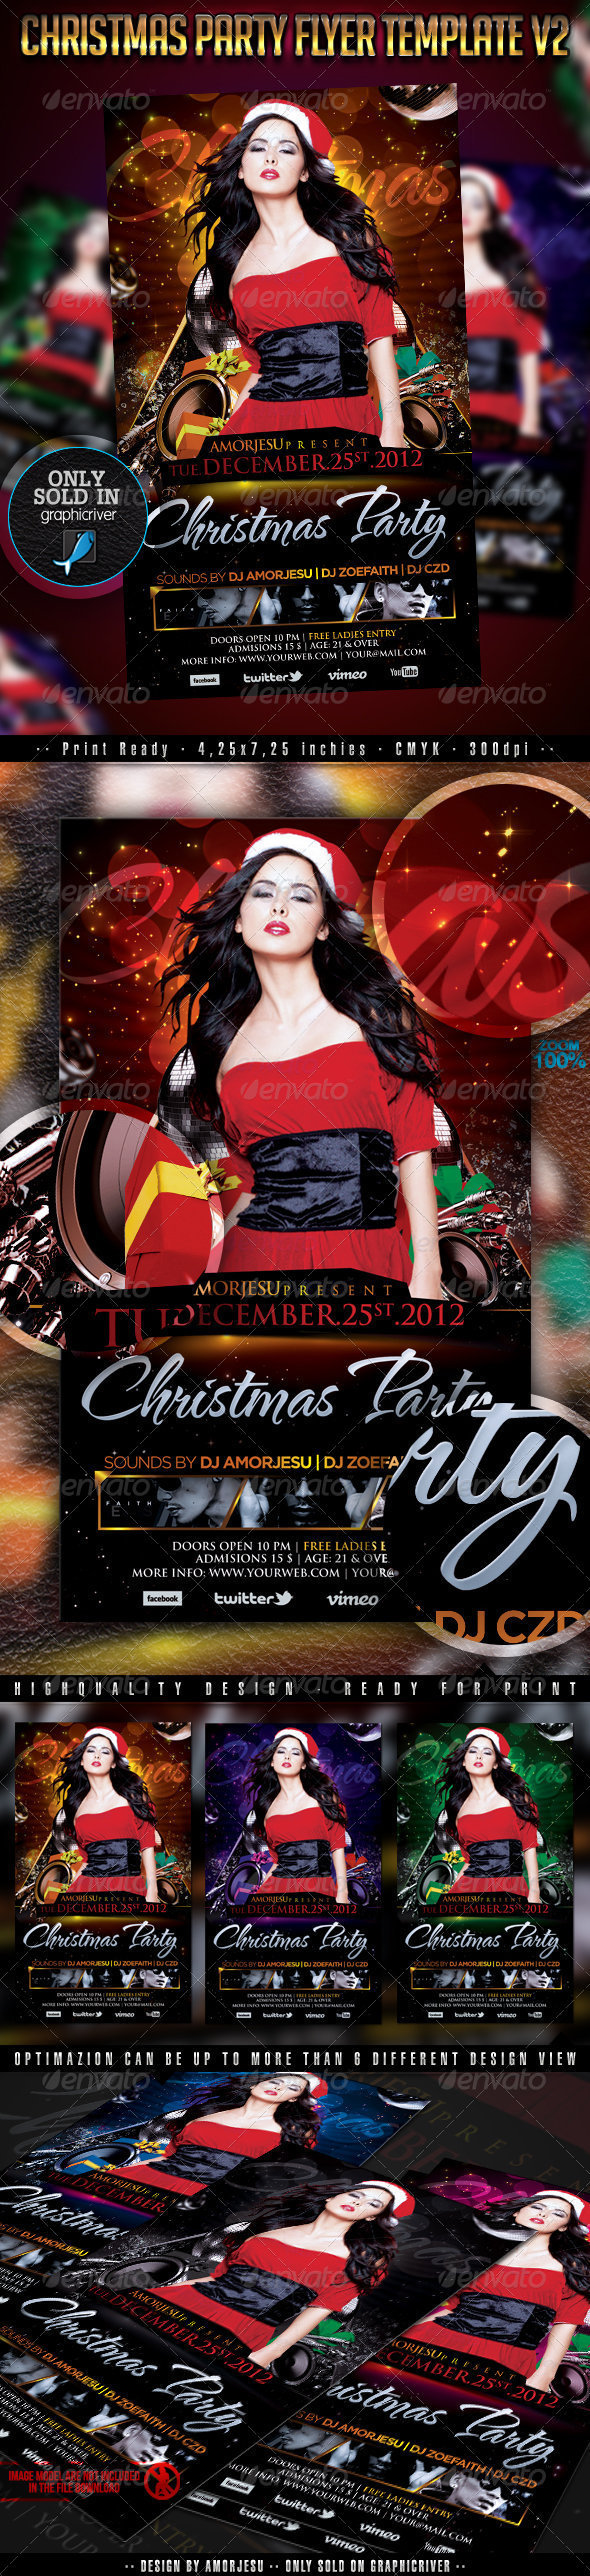 GraphicRiver Christmas Party Flyer Template V2 3364503